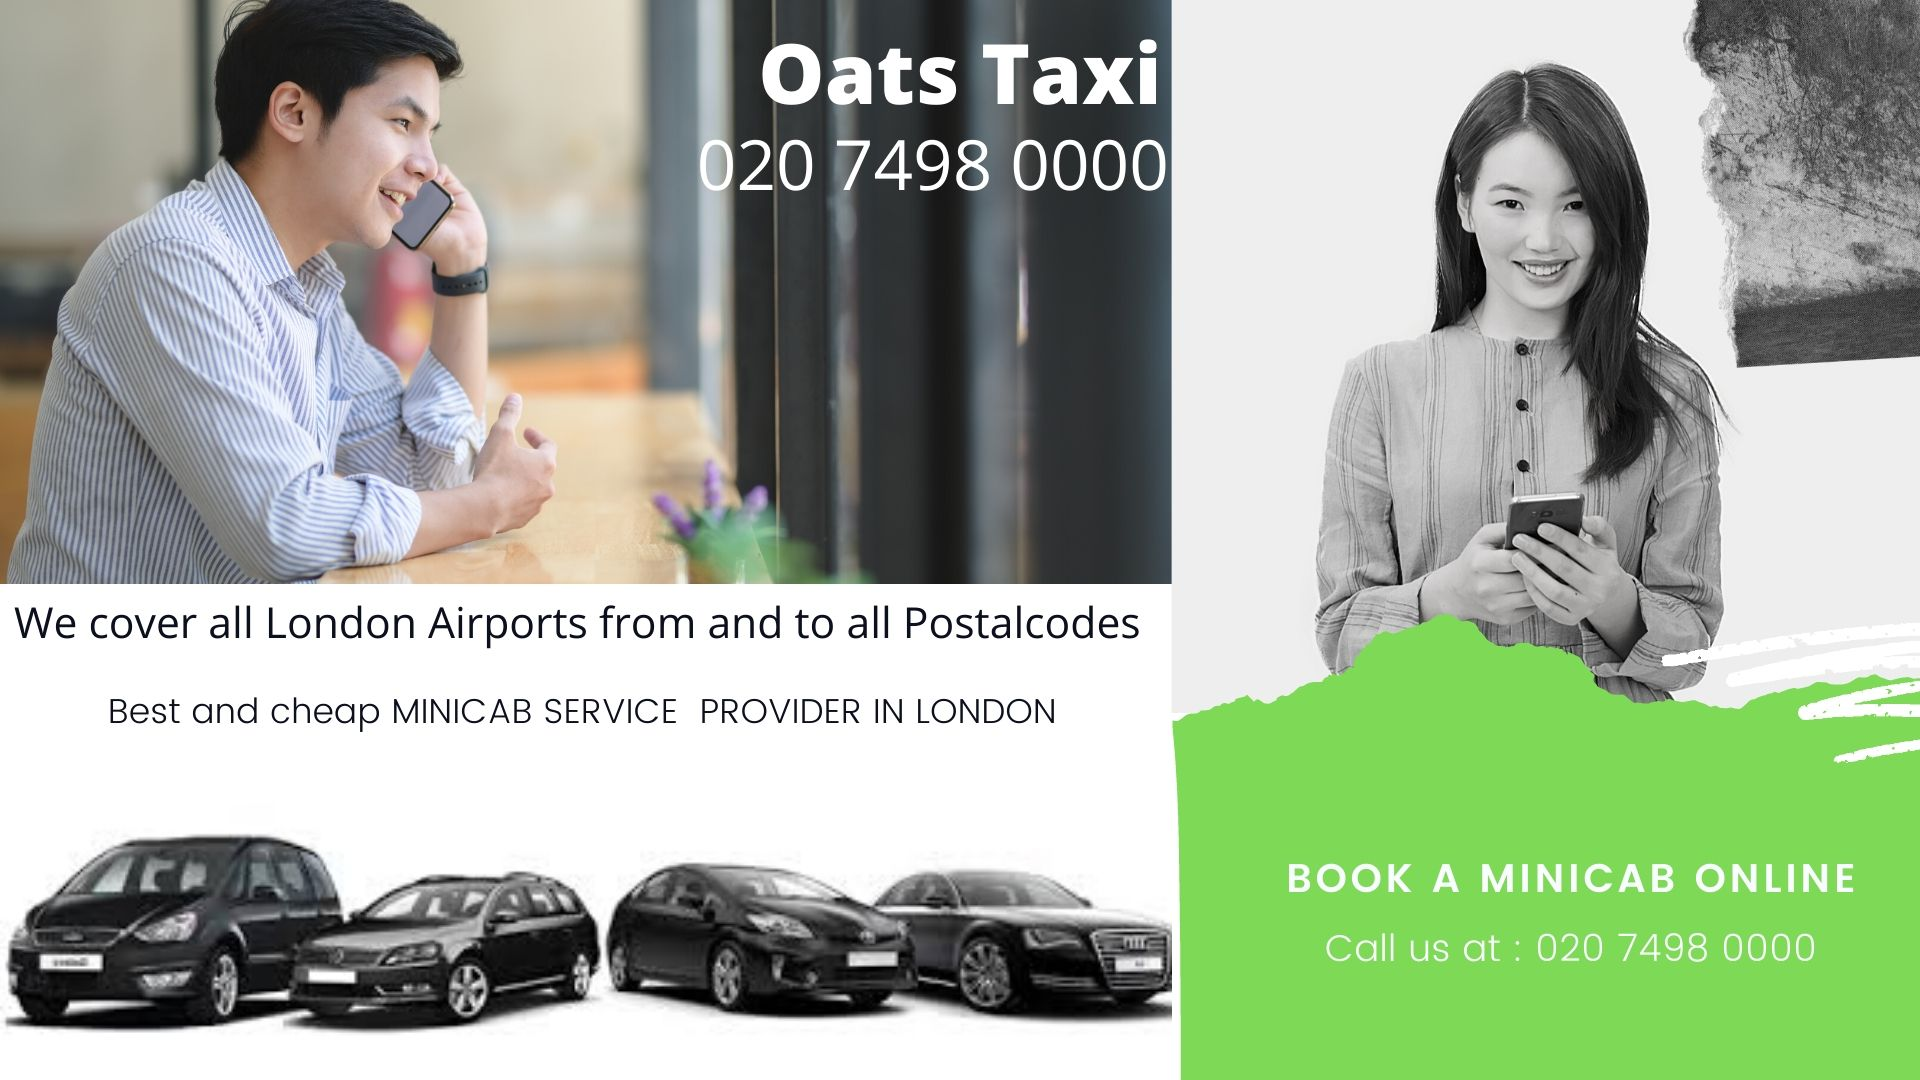 Minicab Office Near NEPAUL ROAD, Battersea SW11, Minicab From Battersea SW11 To Gatwick Airport